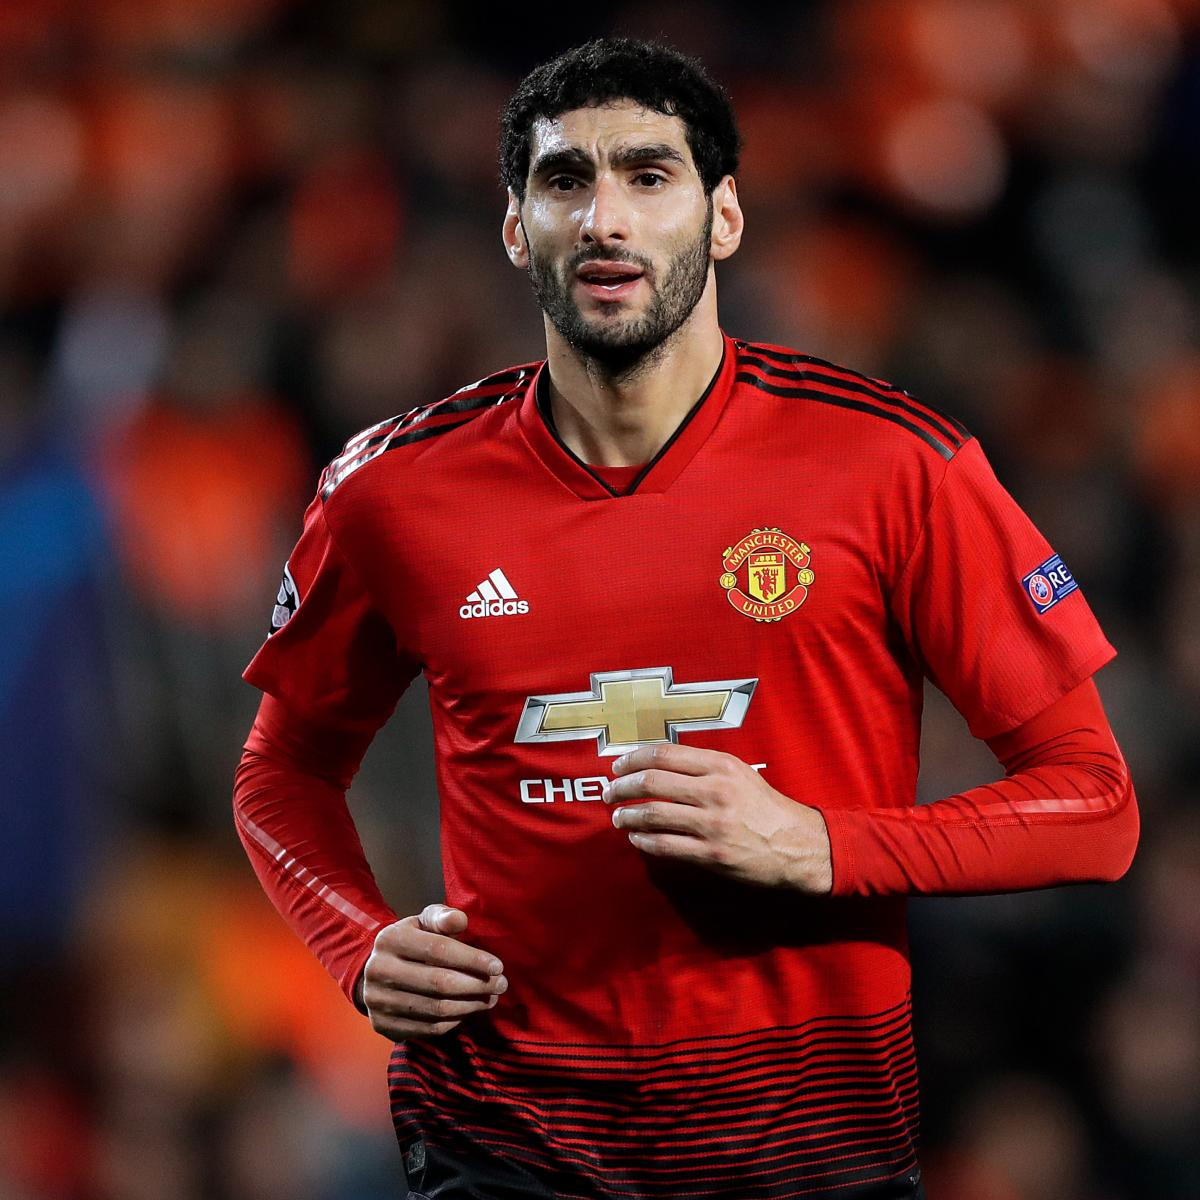 Manchester United Latest Transfer Window: Every Premier League Squad After Transfer Deadline Day For